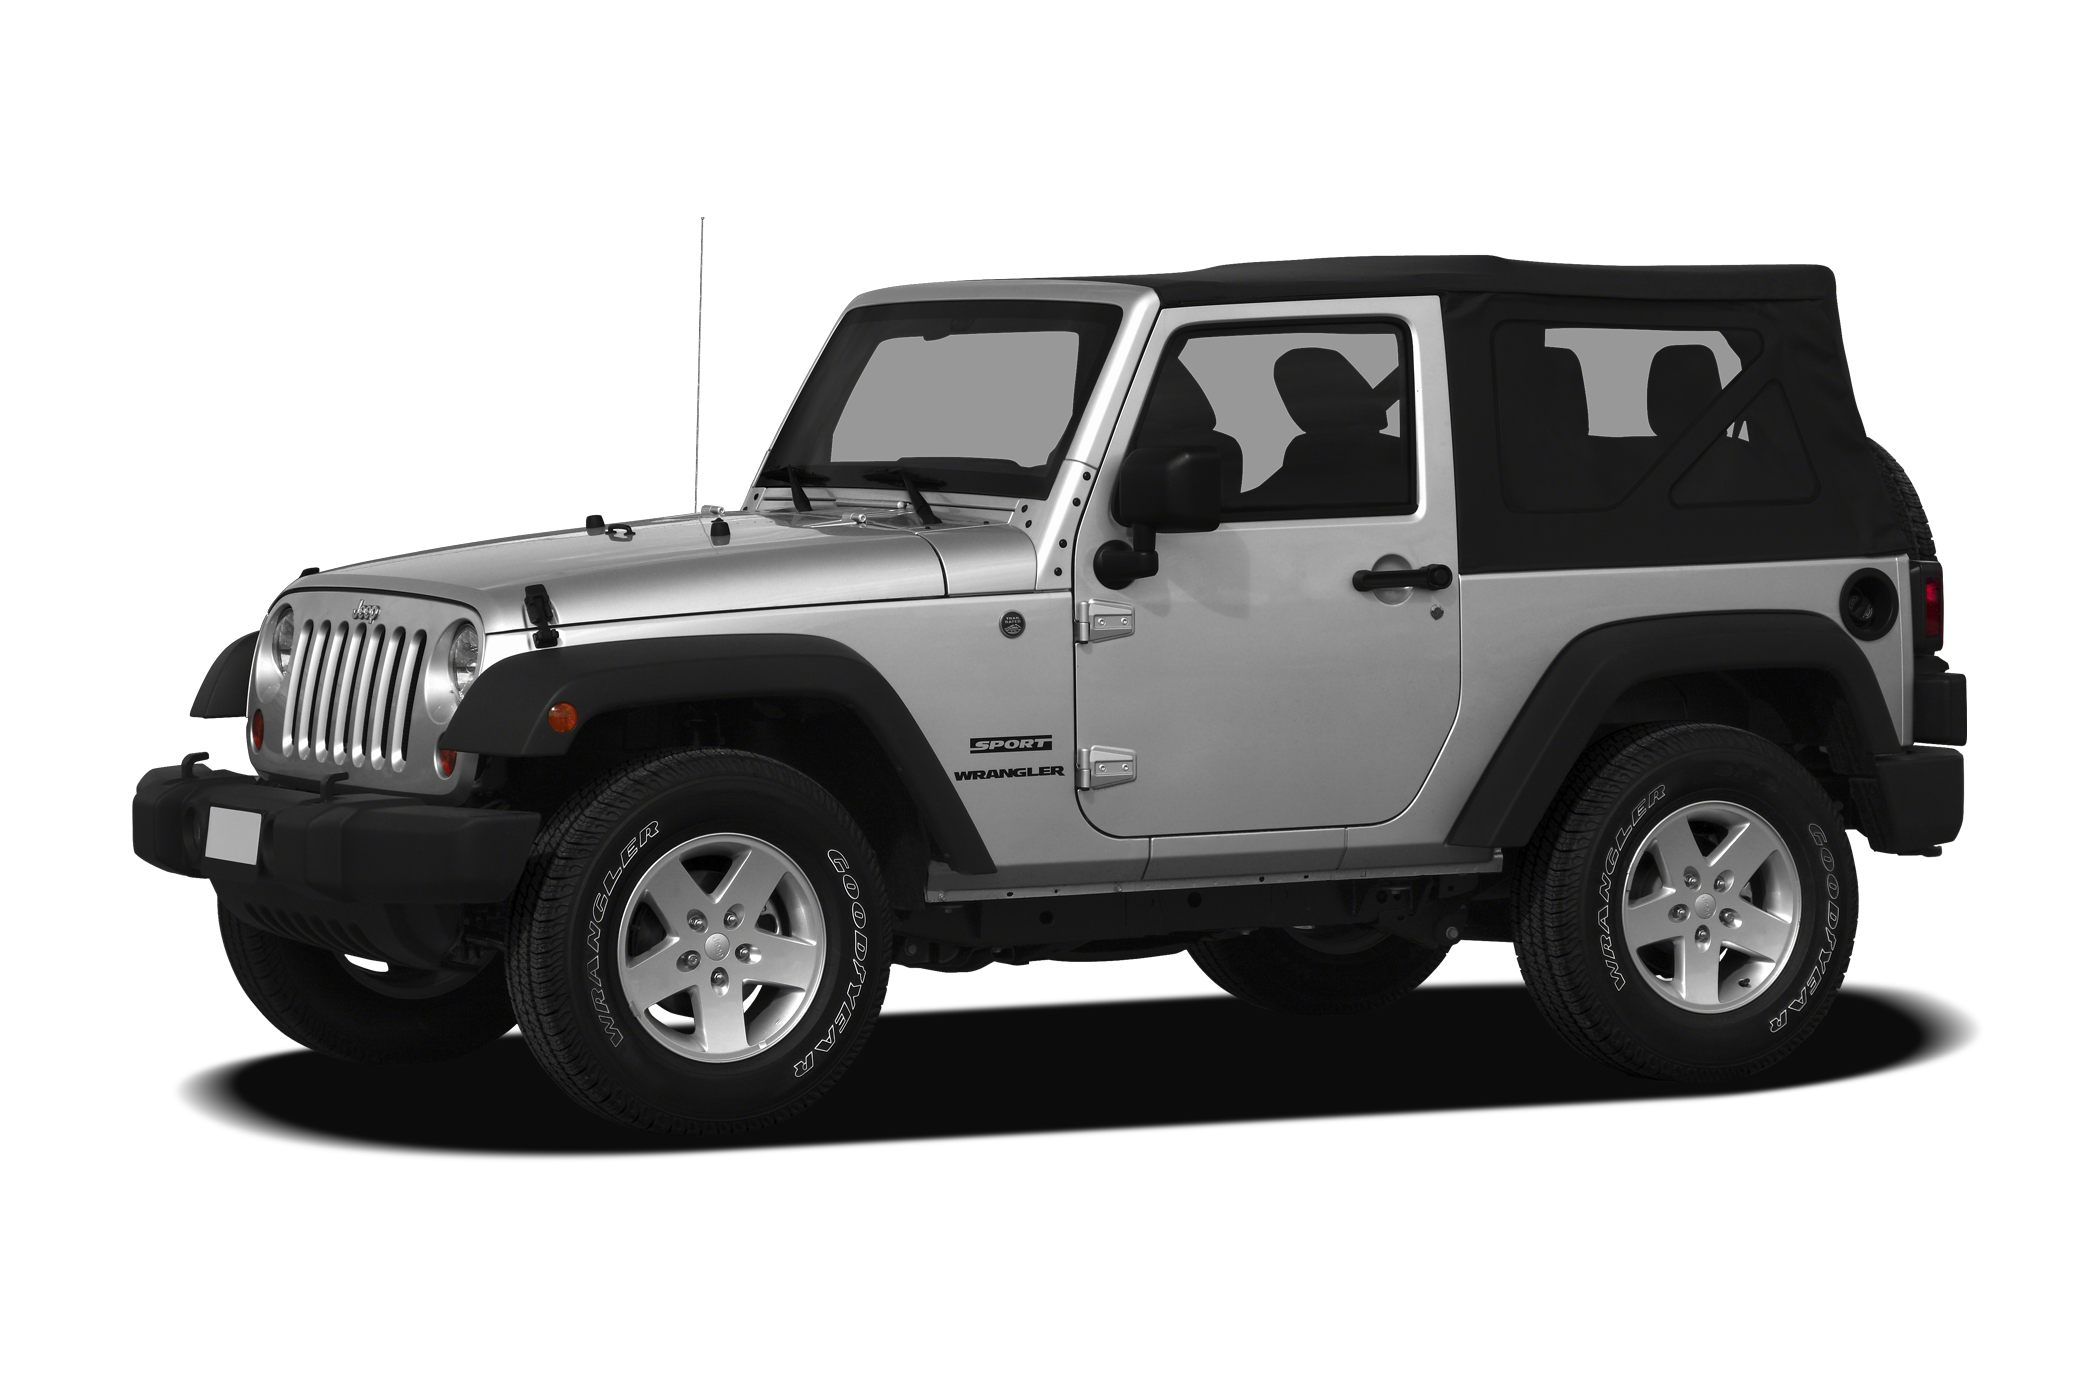 2011 Jeep Wrangler Sport SUV for sale in Bossier City for $22,500 with 66,976 miles